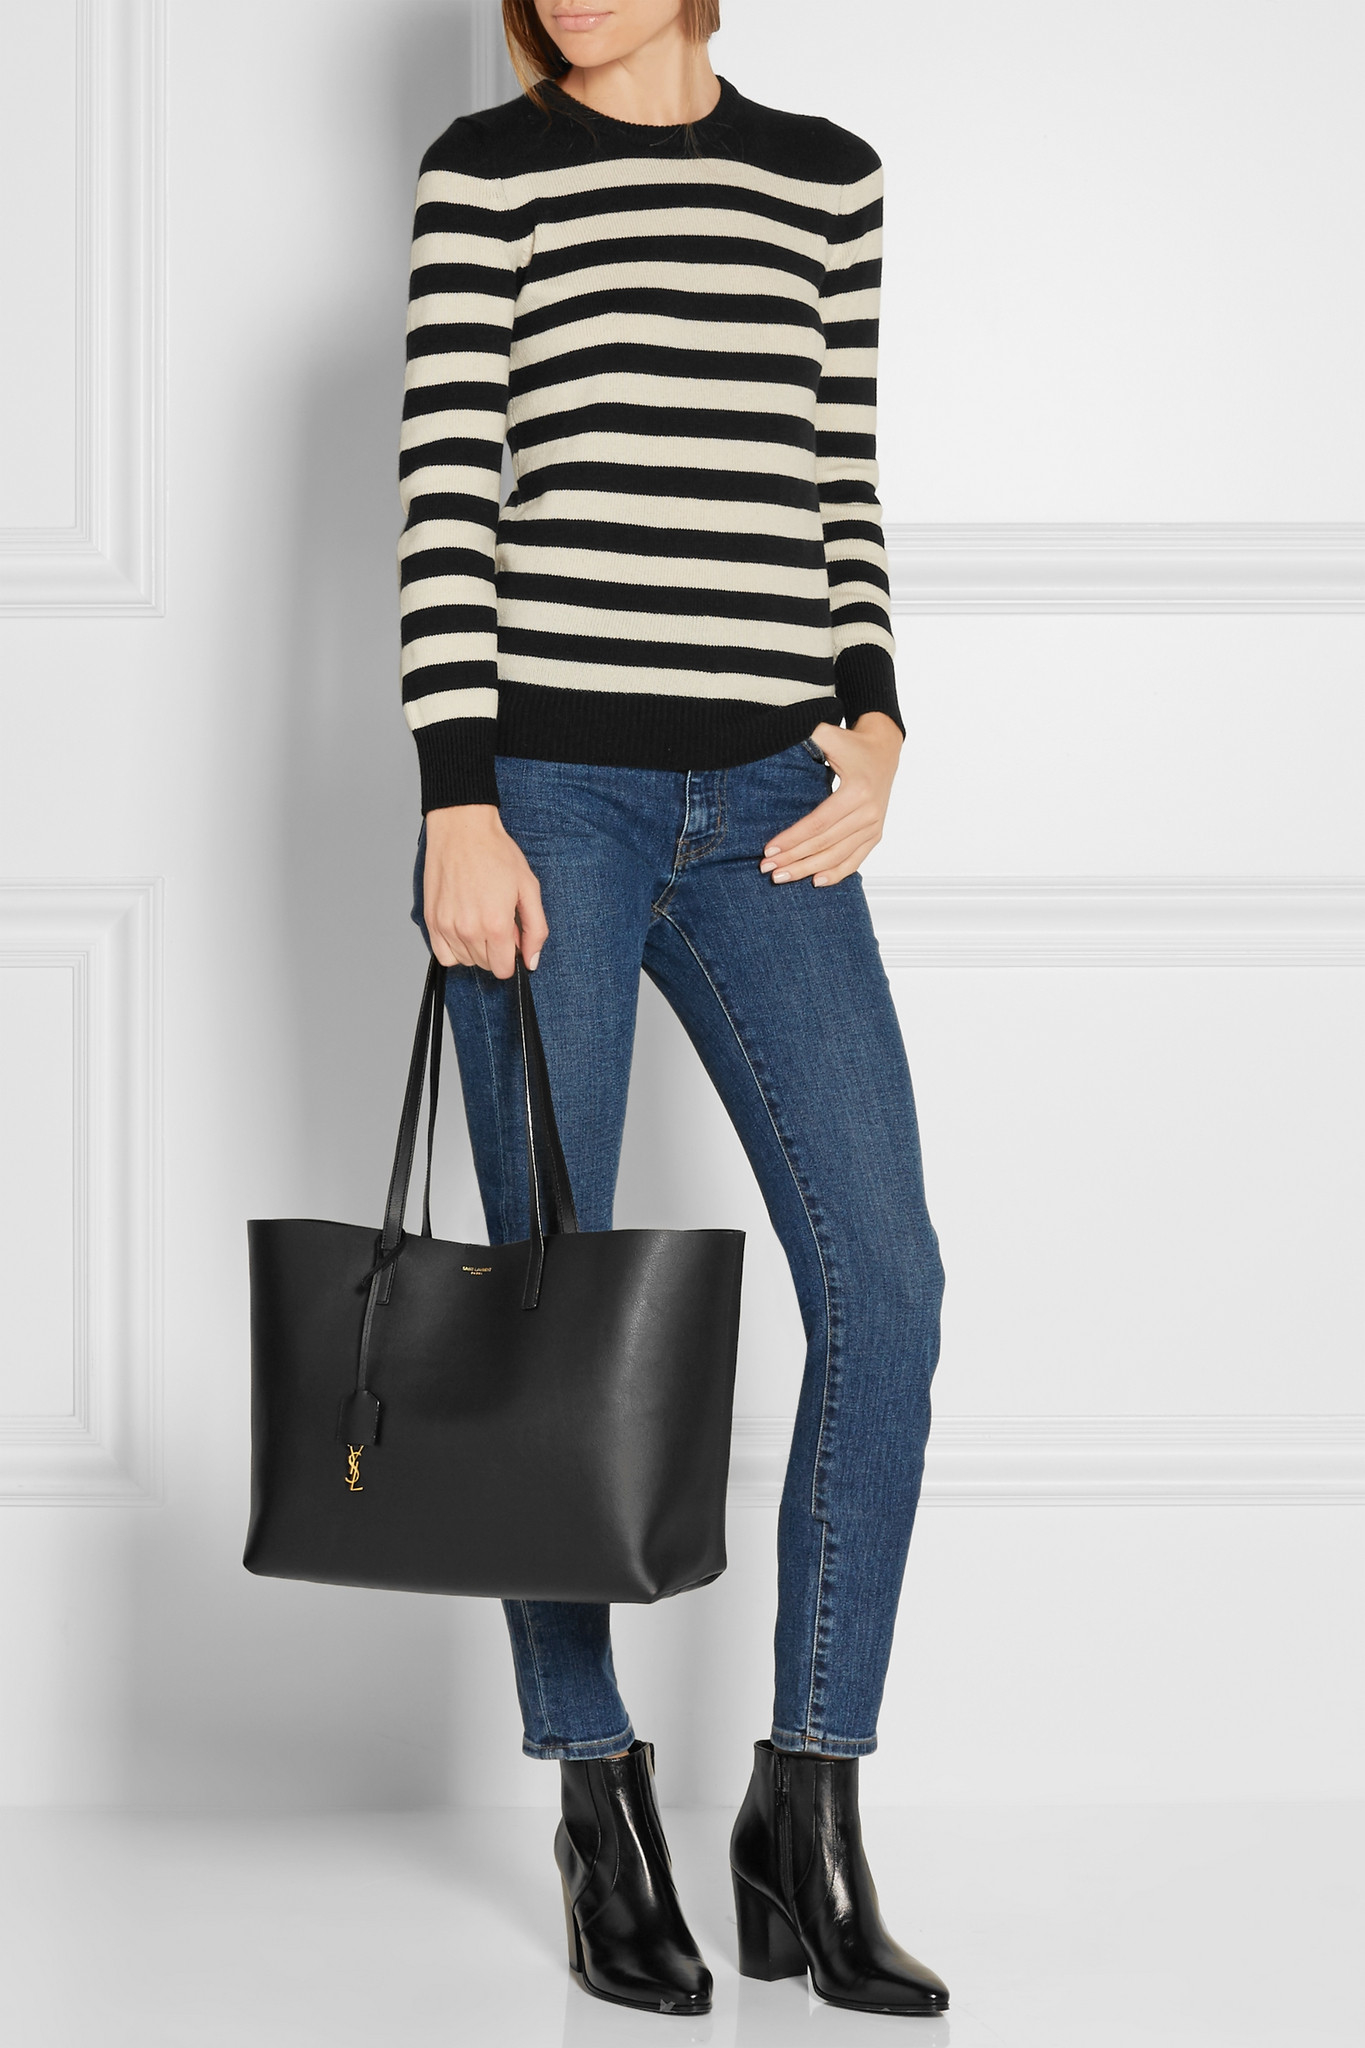 e98cb8f018f Saint Laurent Shopping Large Textured-leather Tote in Black - Lyst